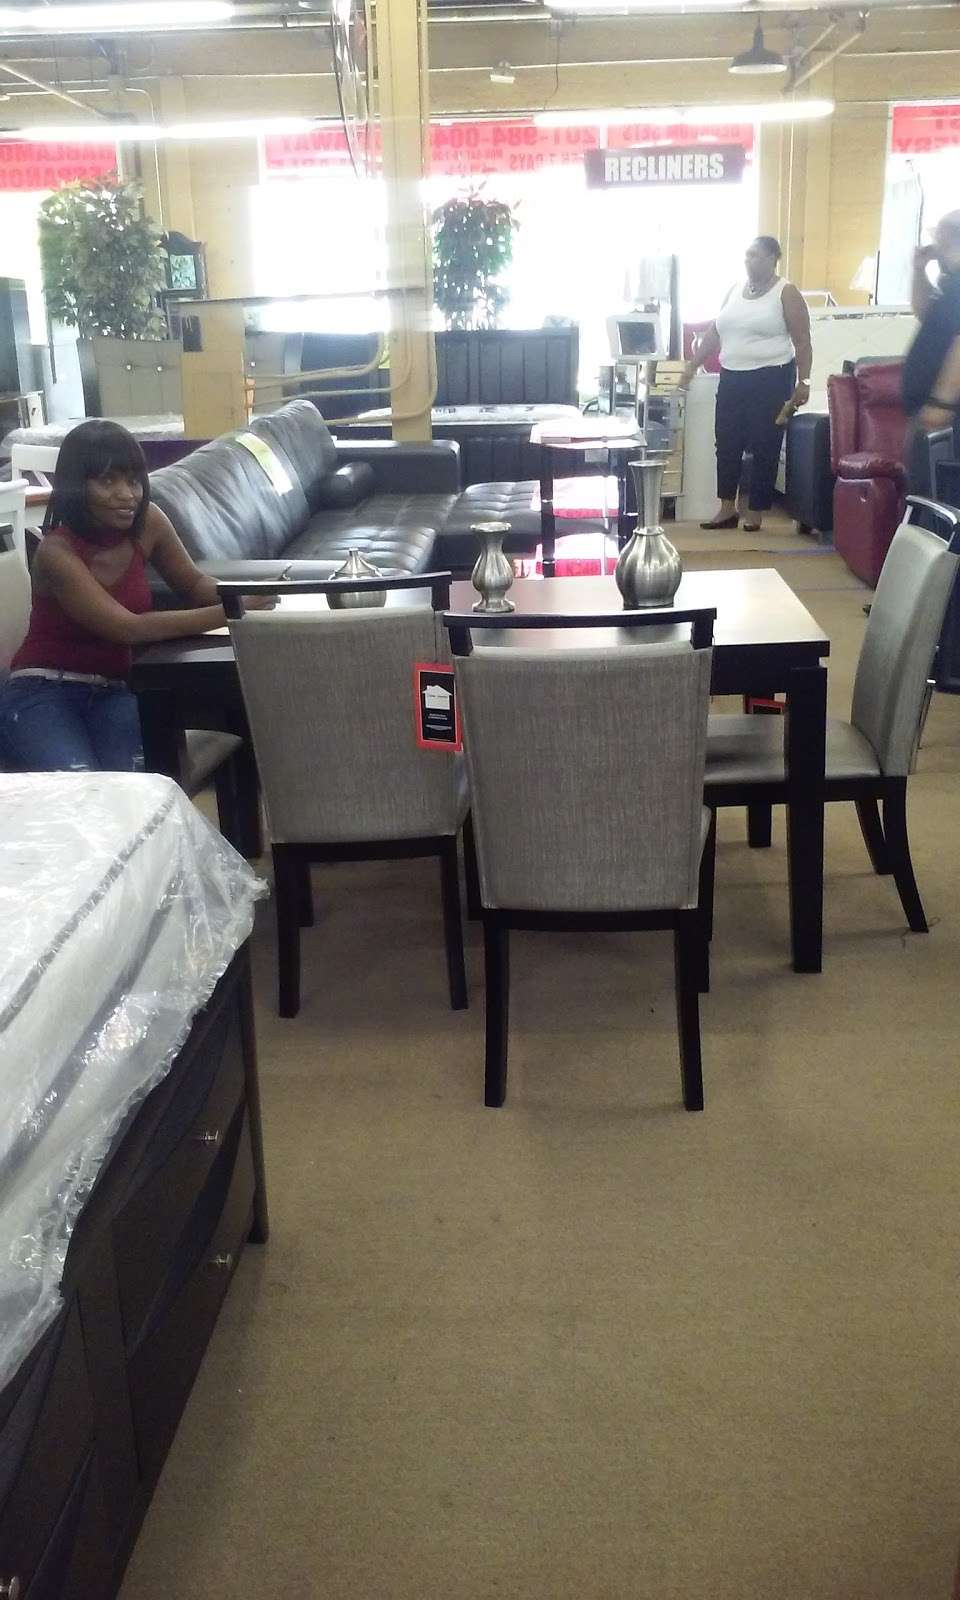 Furniture Direct - furniture store    Photo 7 of 10   Address: 368 Duncan Ave, Jersey City, NJ 07306, USA   Phone: (201) 984-0048